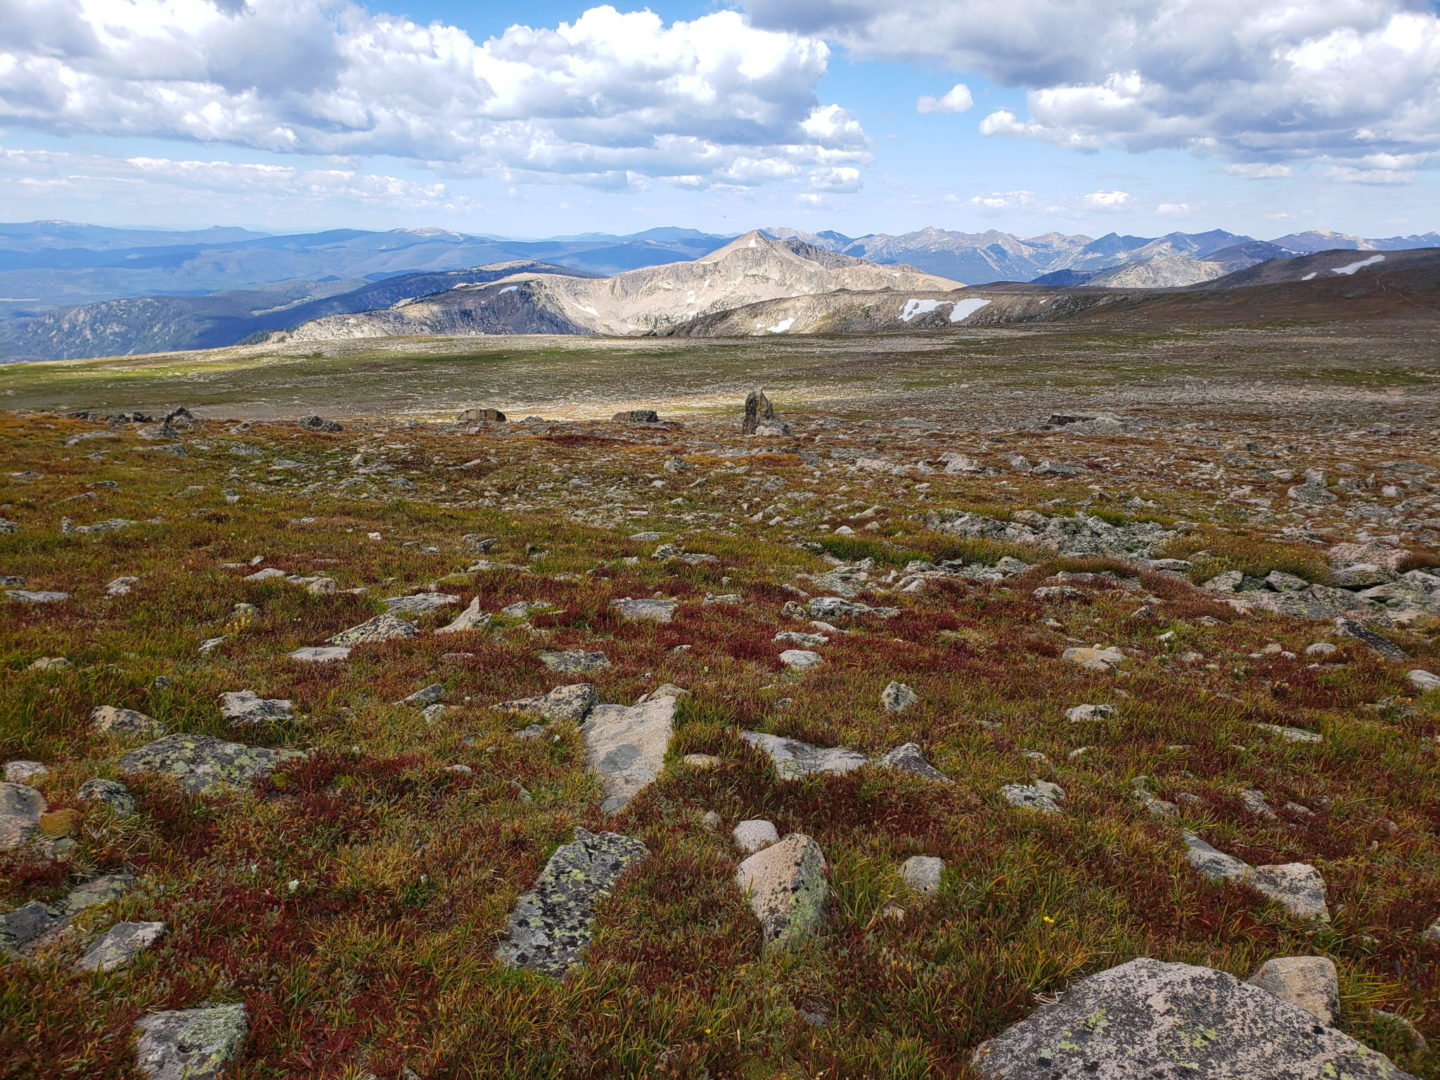 View along the Continental Divide